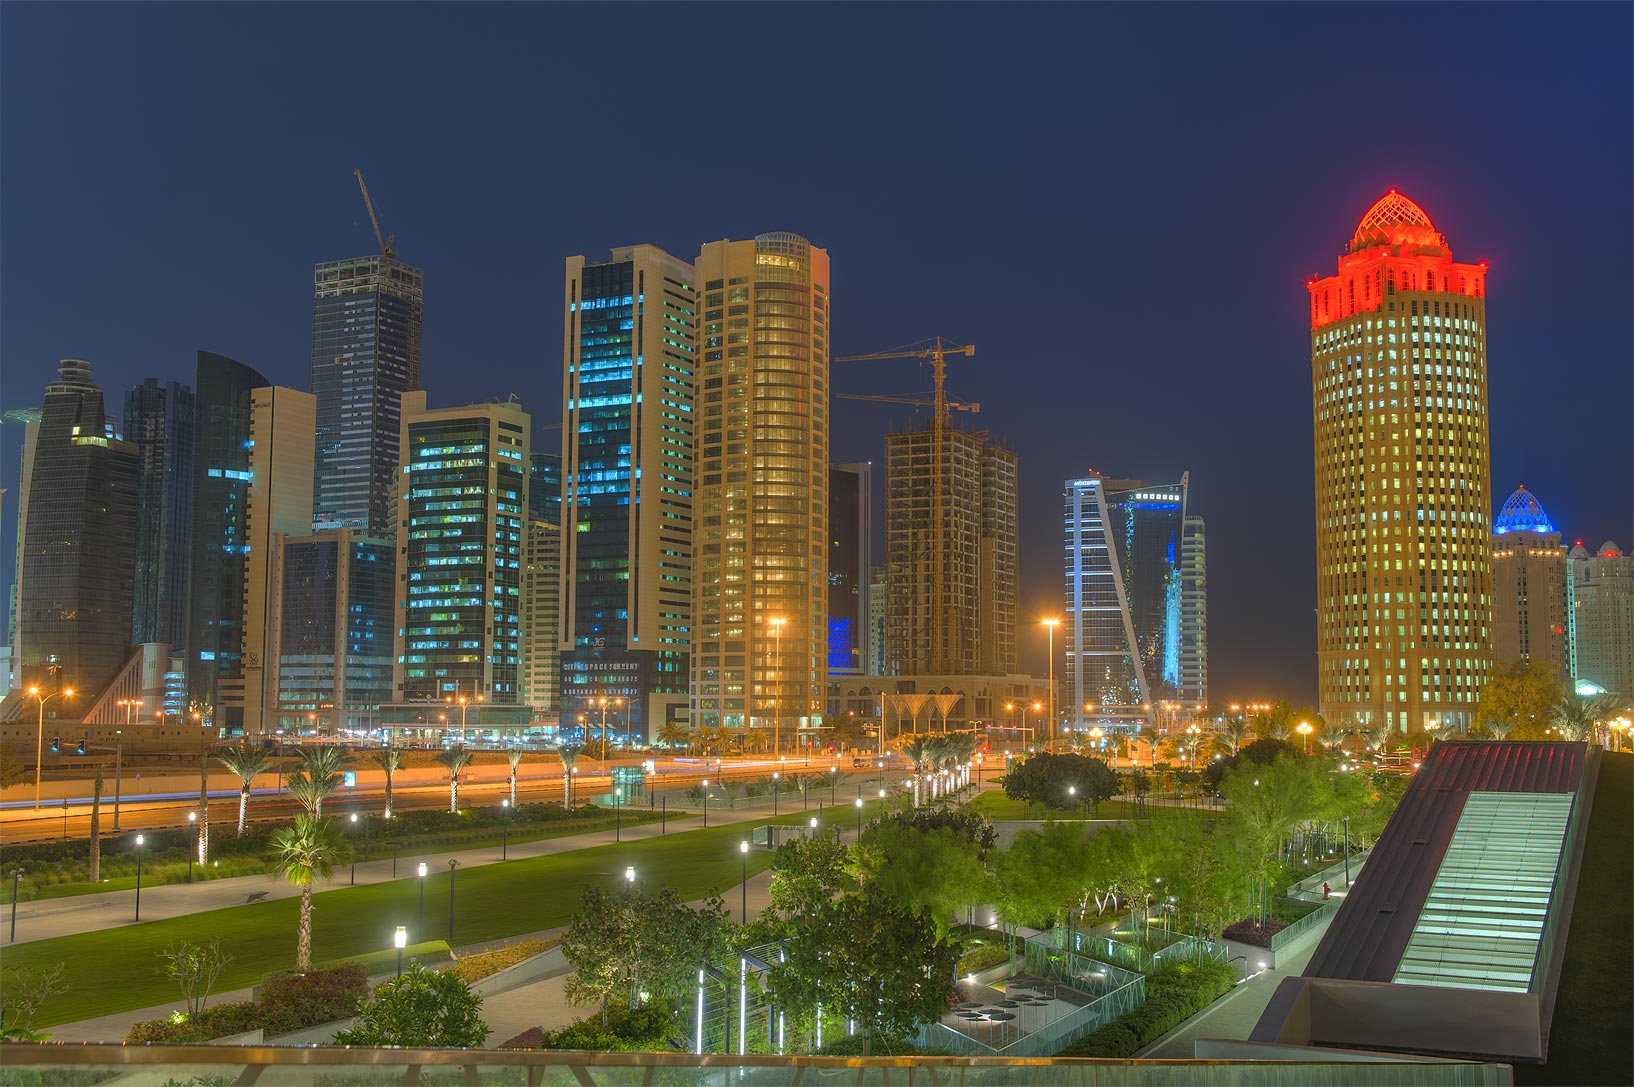 New park and West Bay from a grassy hill below Sheraton Hotel. Doha, Qatar